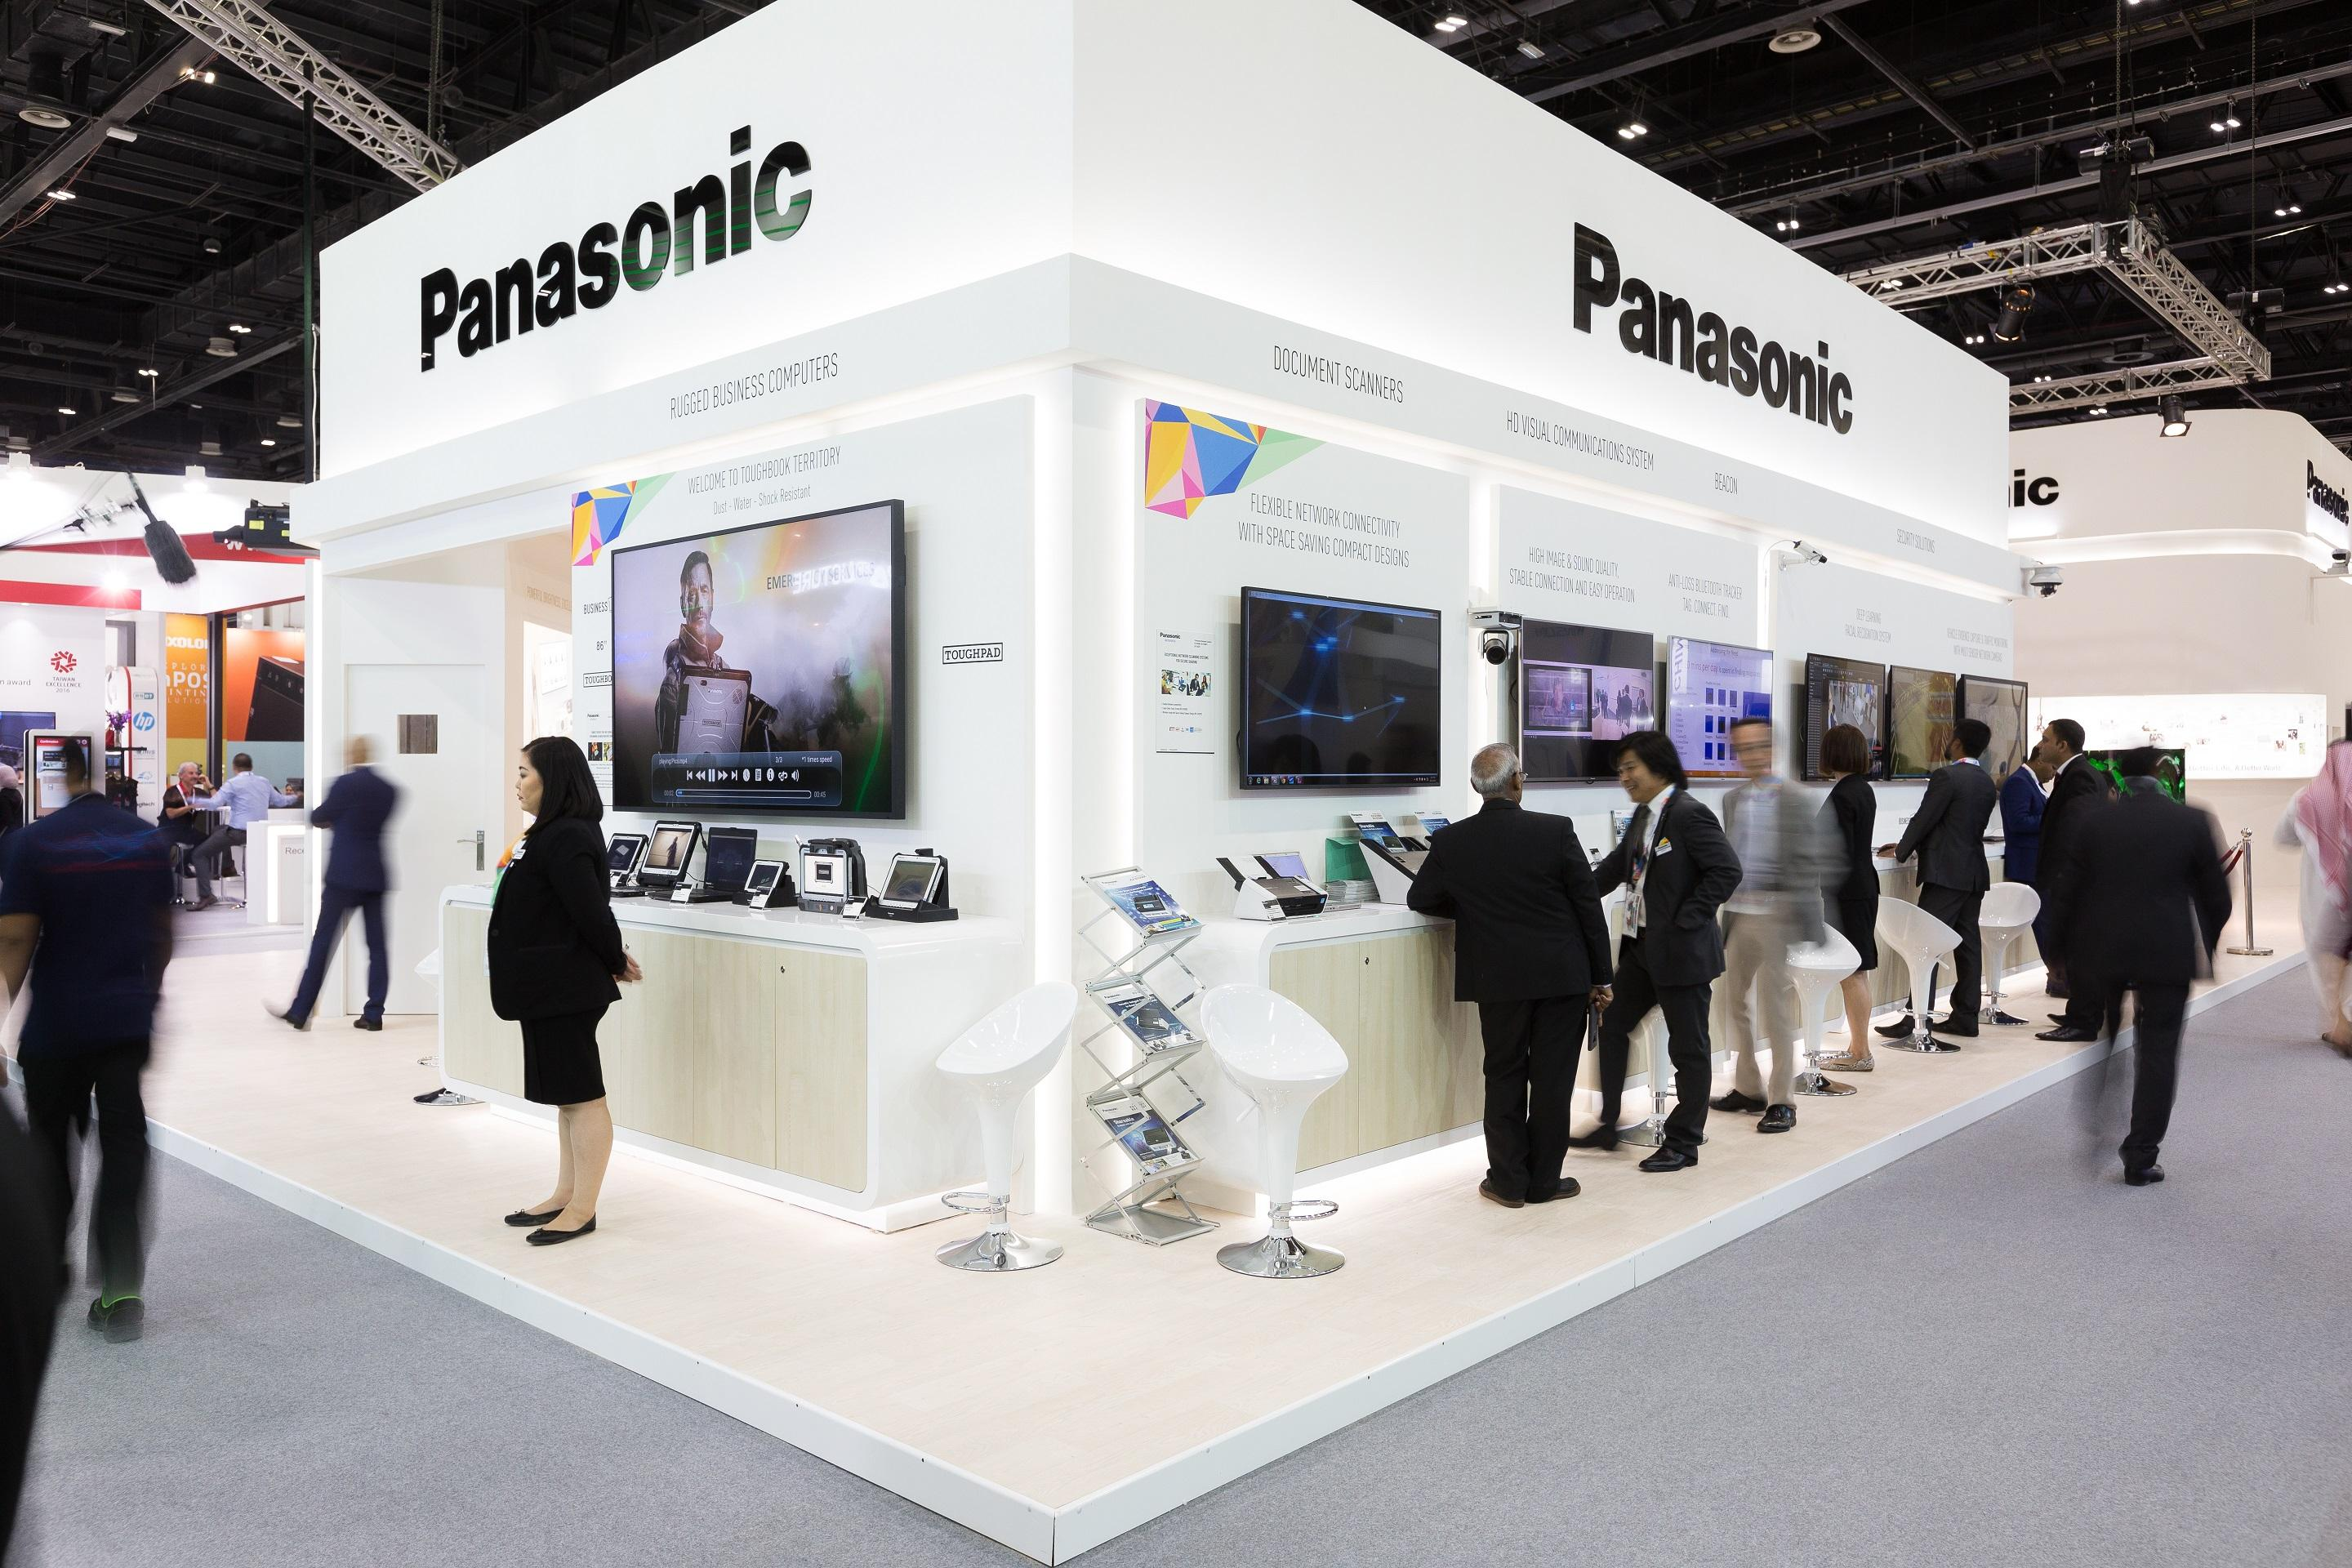 photo: Panasonic booth at GITEX 2018